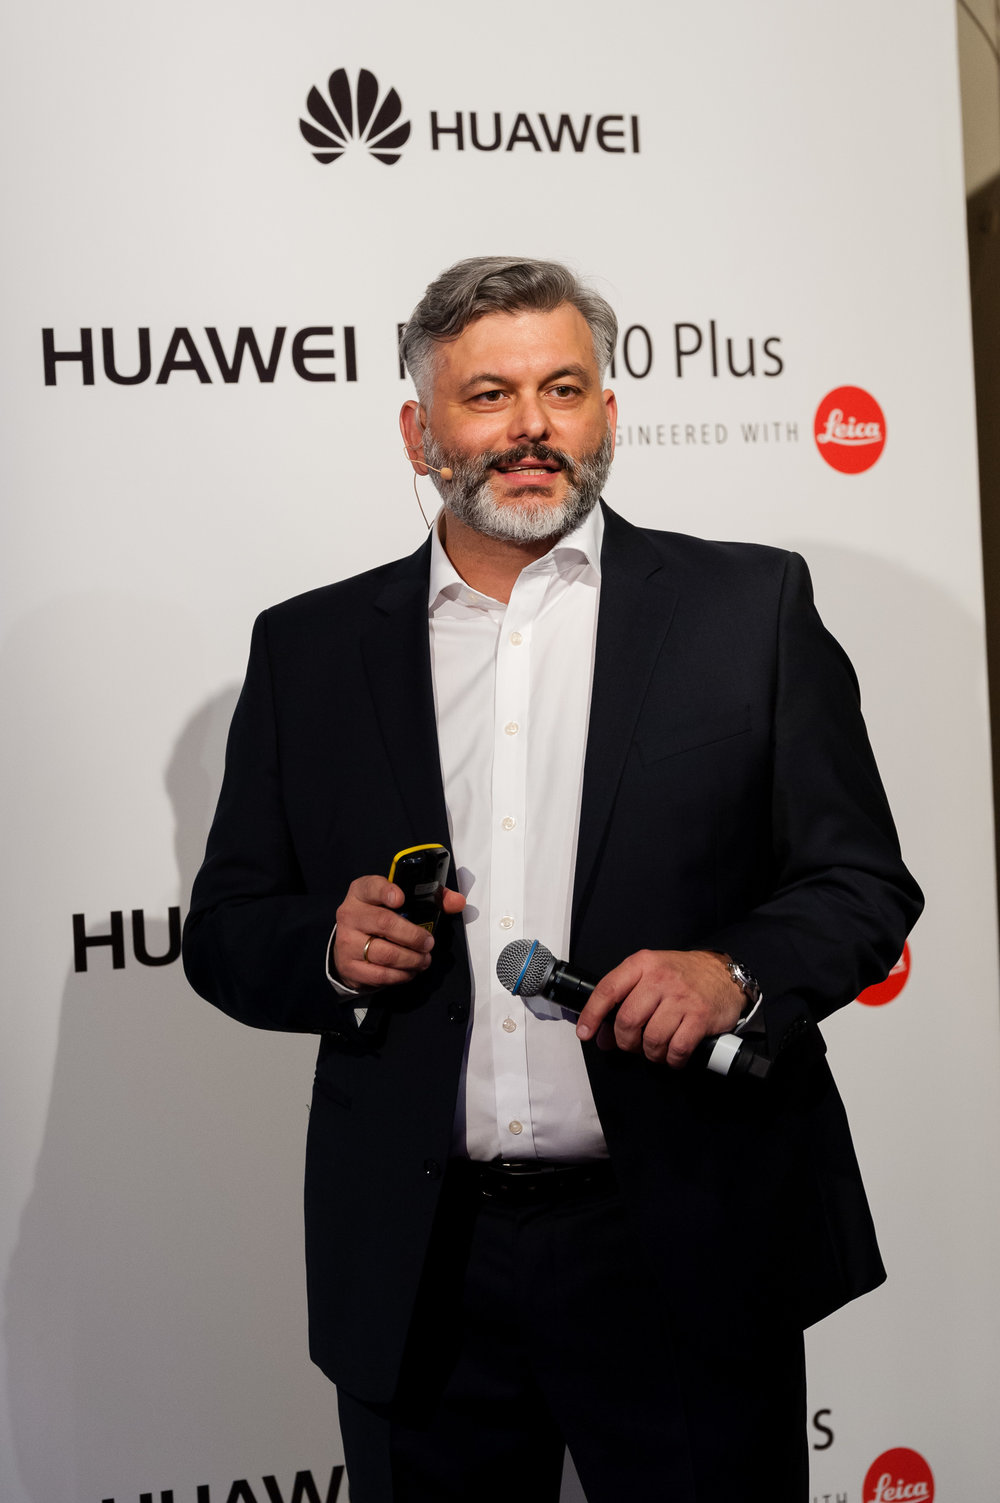 Petros_Drakopoulos_Country_Marketing_Manager_of_Huawei_Greece.jpg